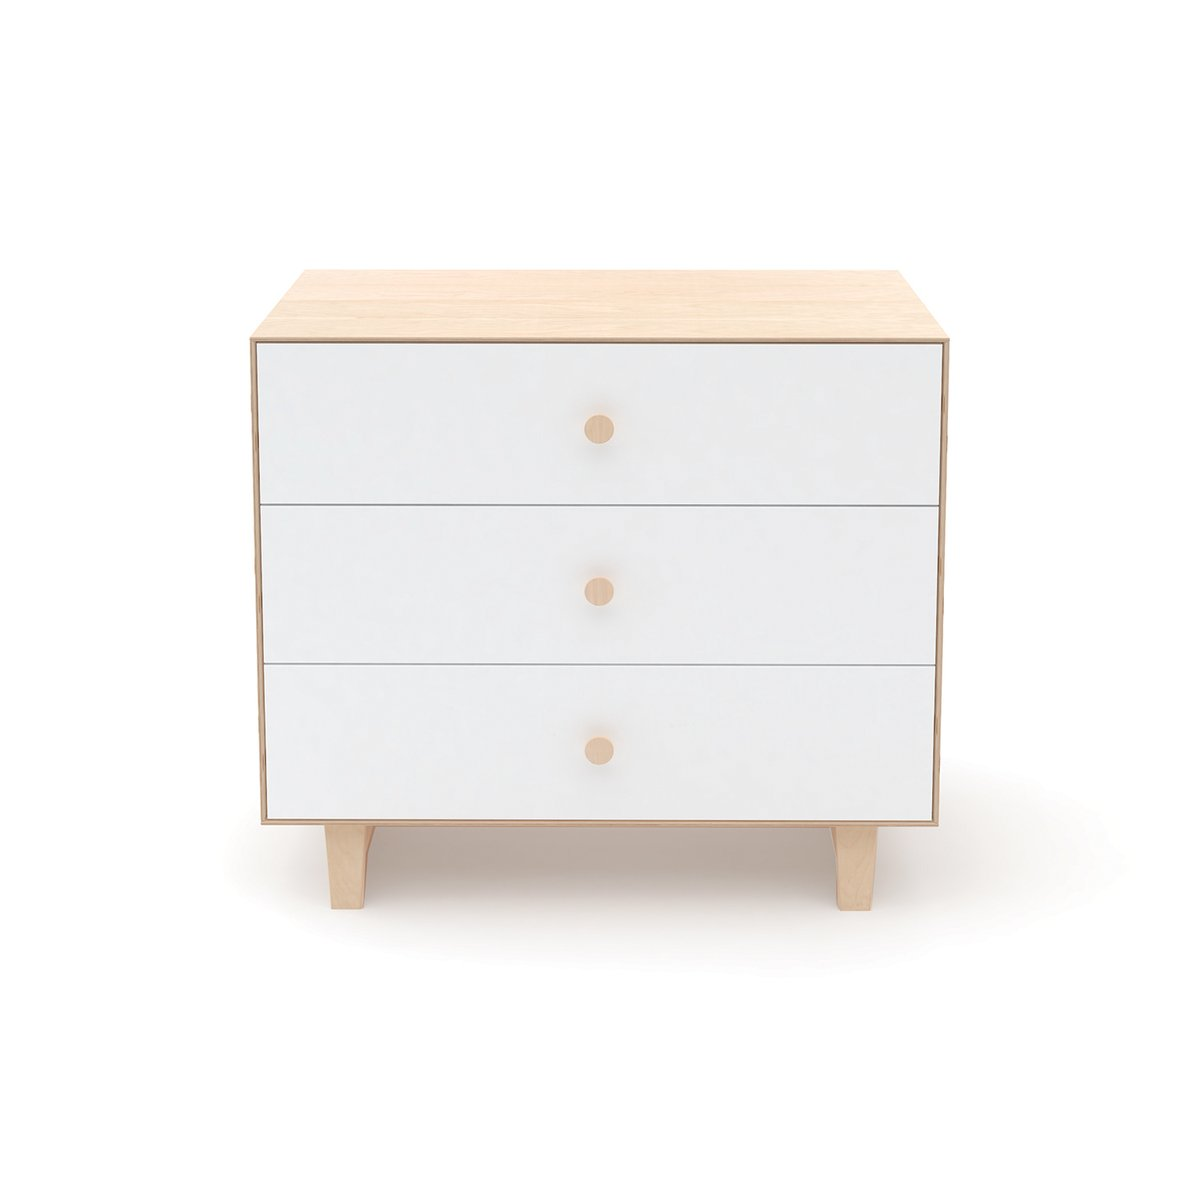 Rhea Dresser by Oeuf 3 Drawer or 6 Drawer option